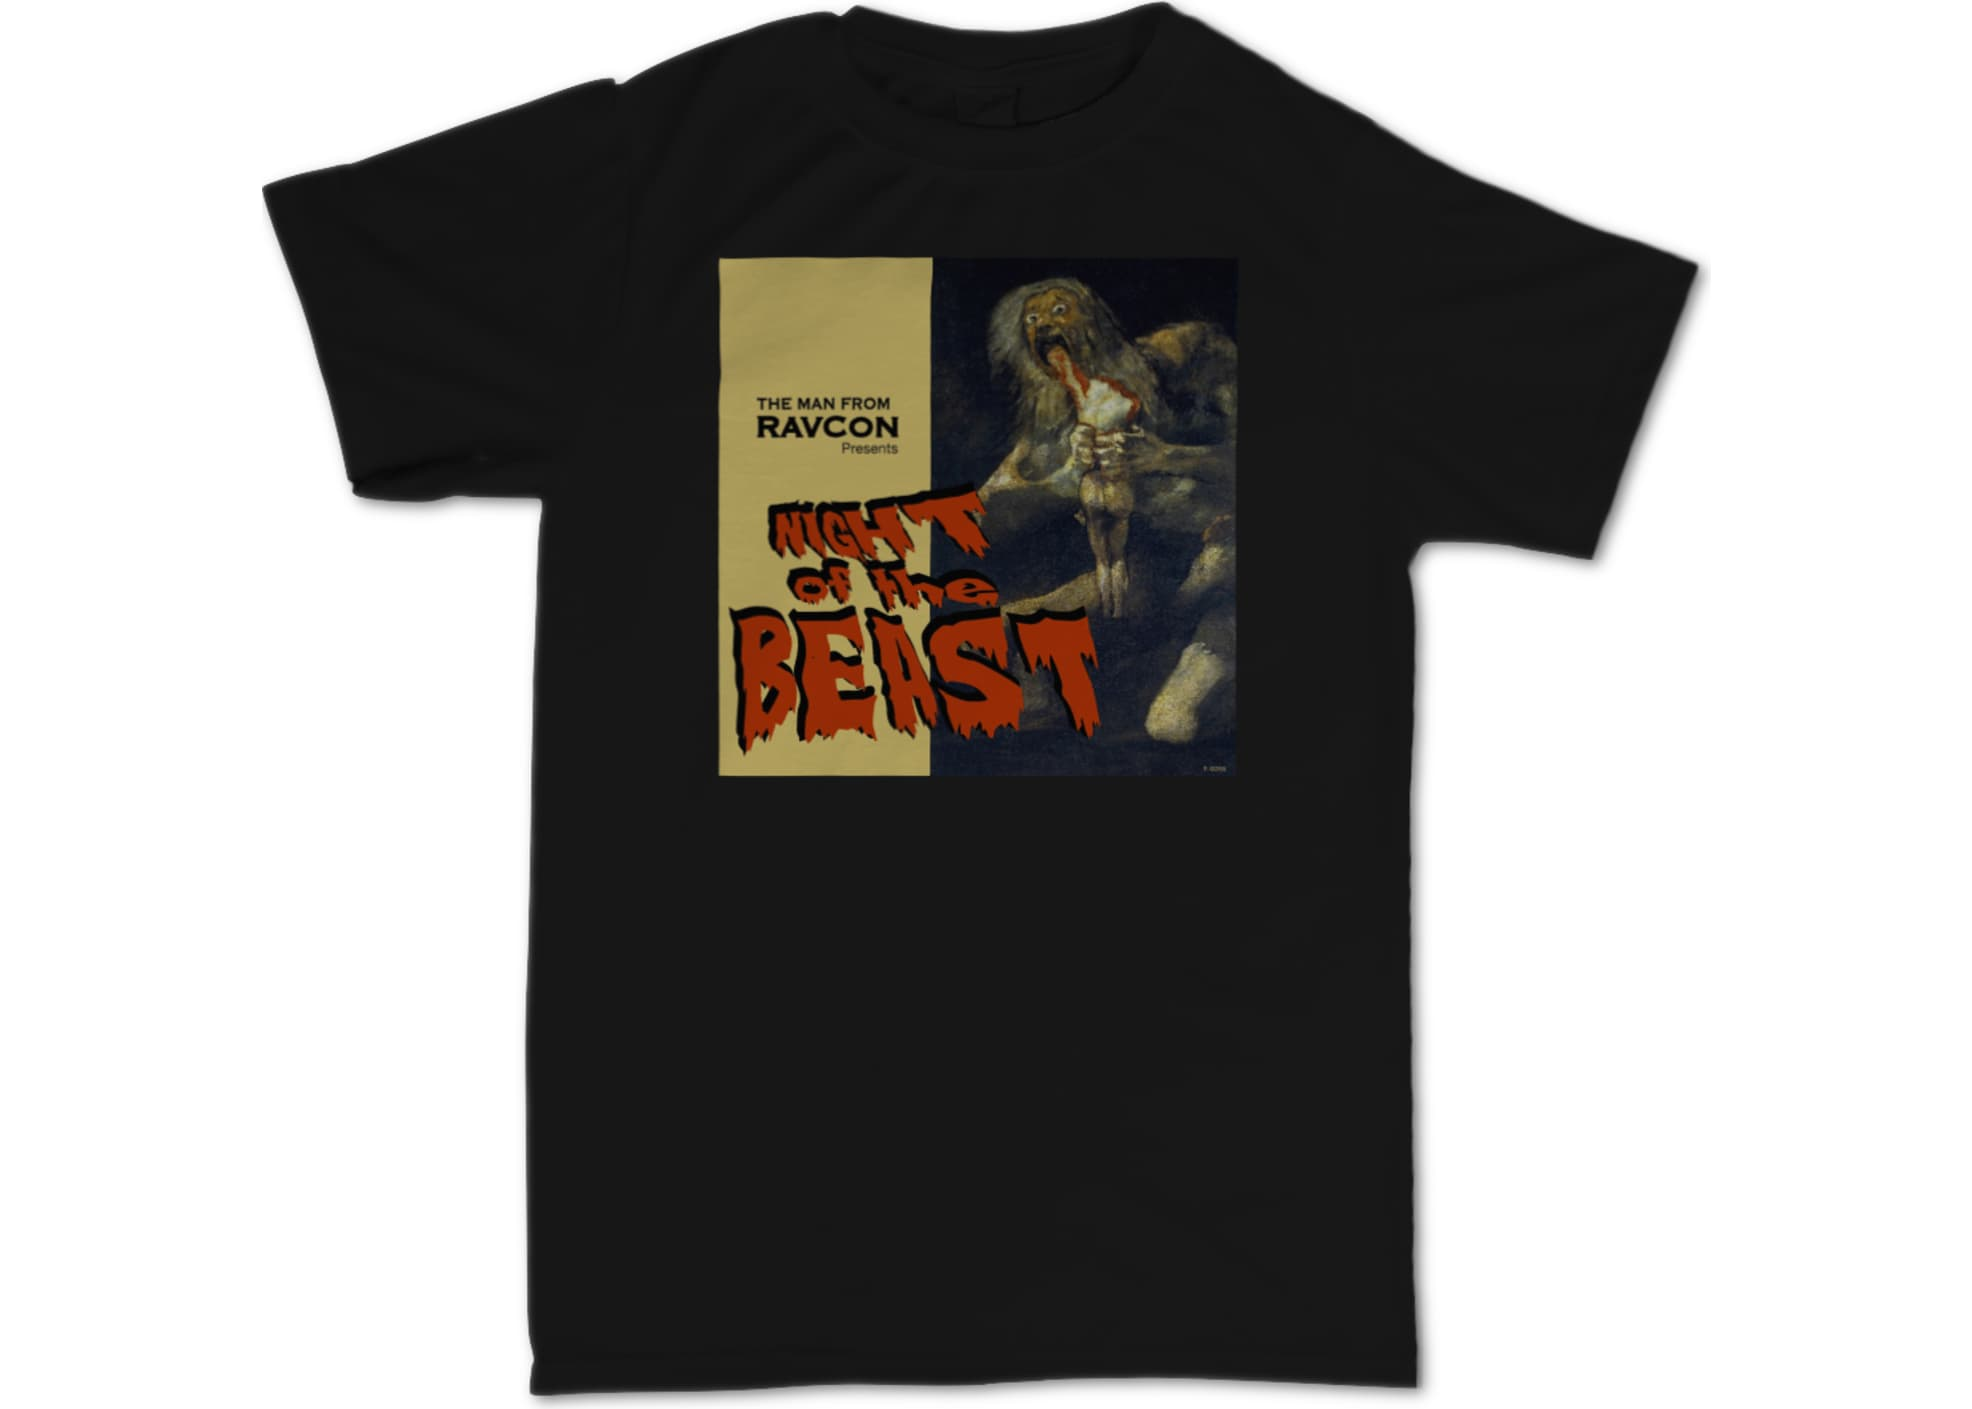 The man from ravcon night of the beast 1506649539